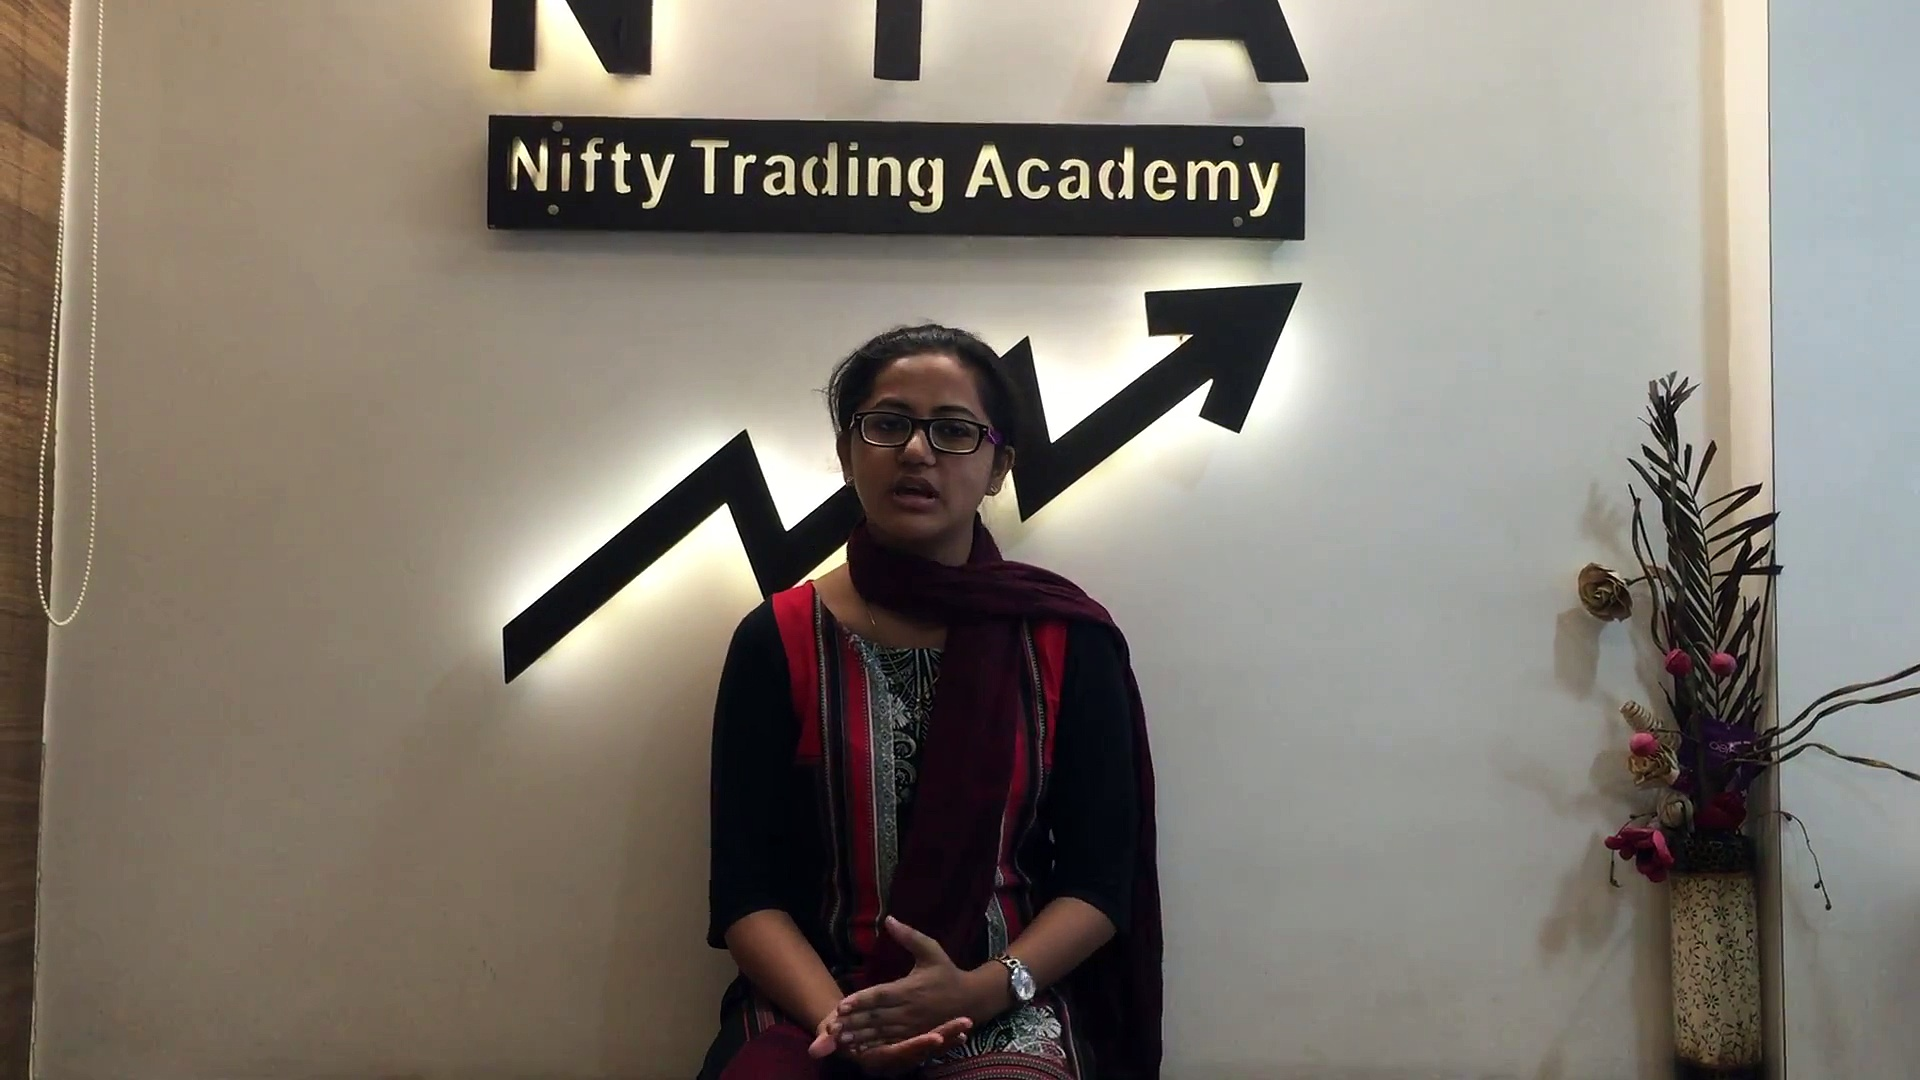 Nifty Trading Academy Review By Tasmin (Assam)